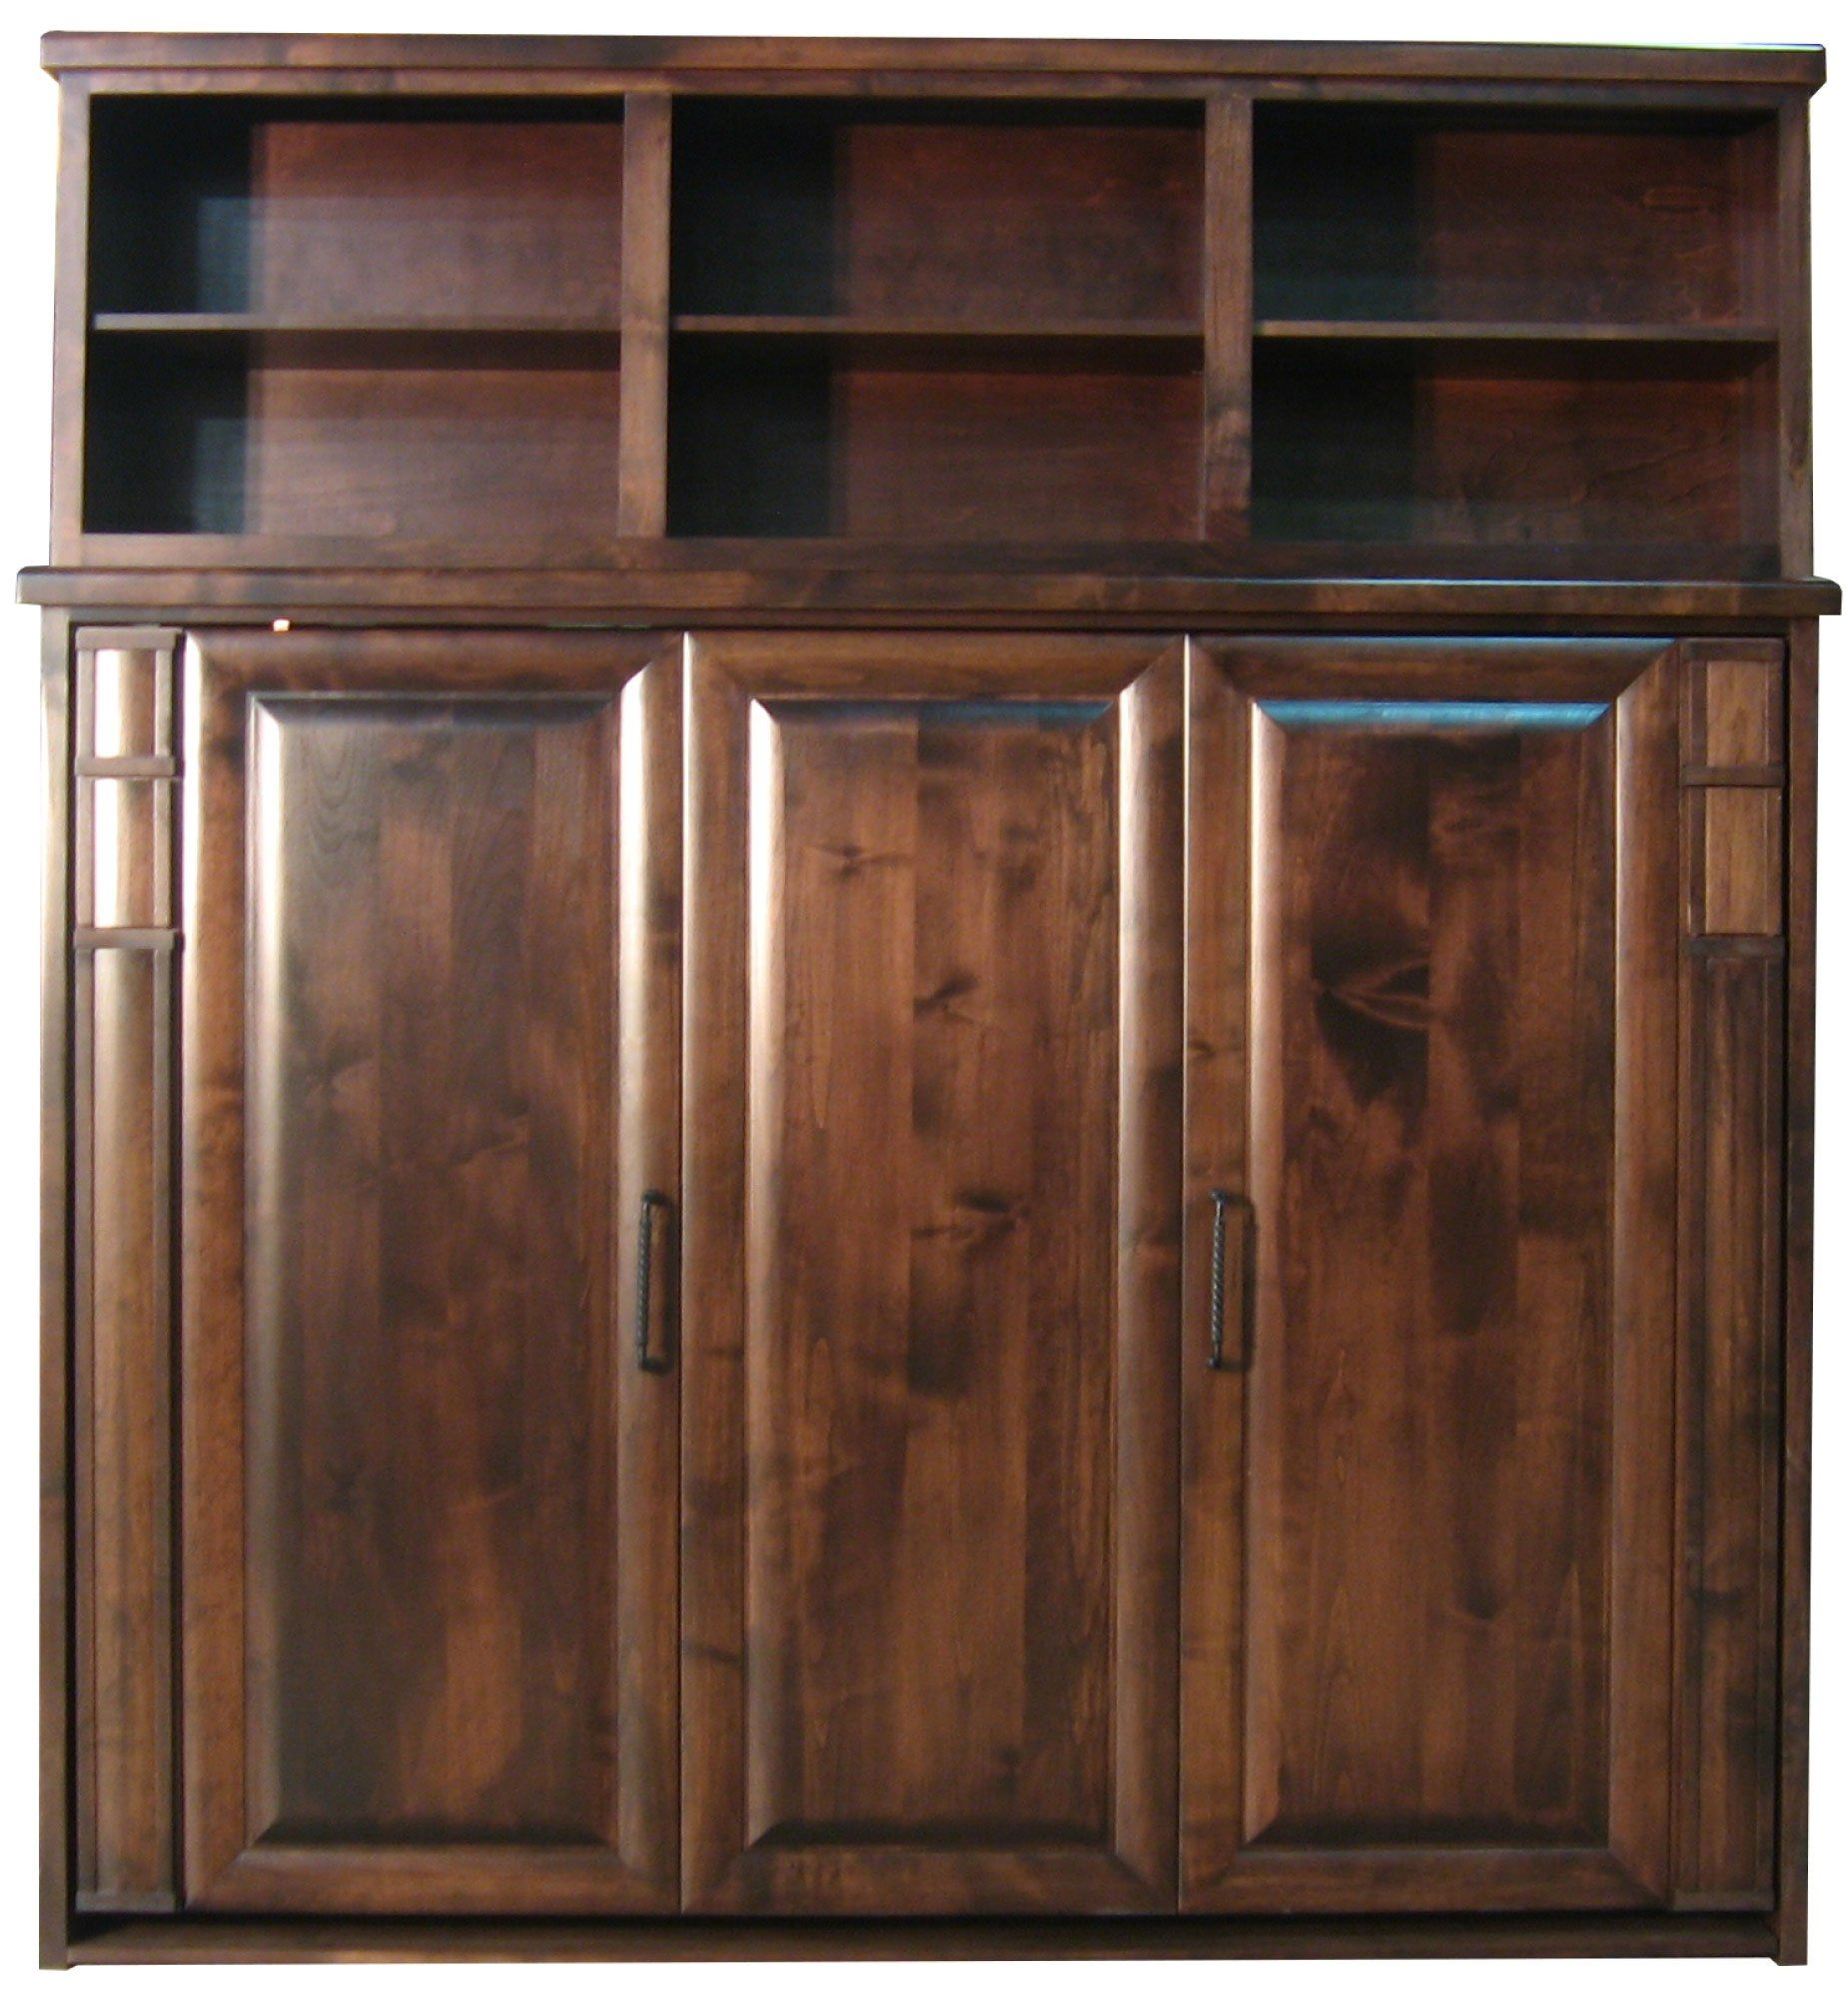 images of alder wood Google Search Murphy wall beds